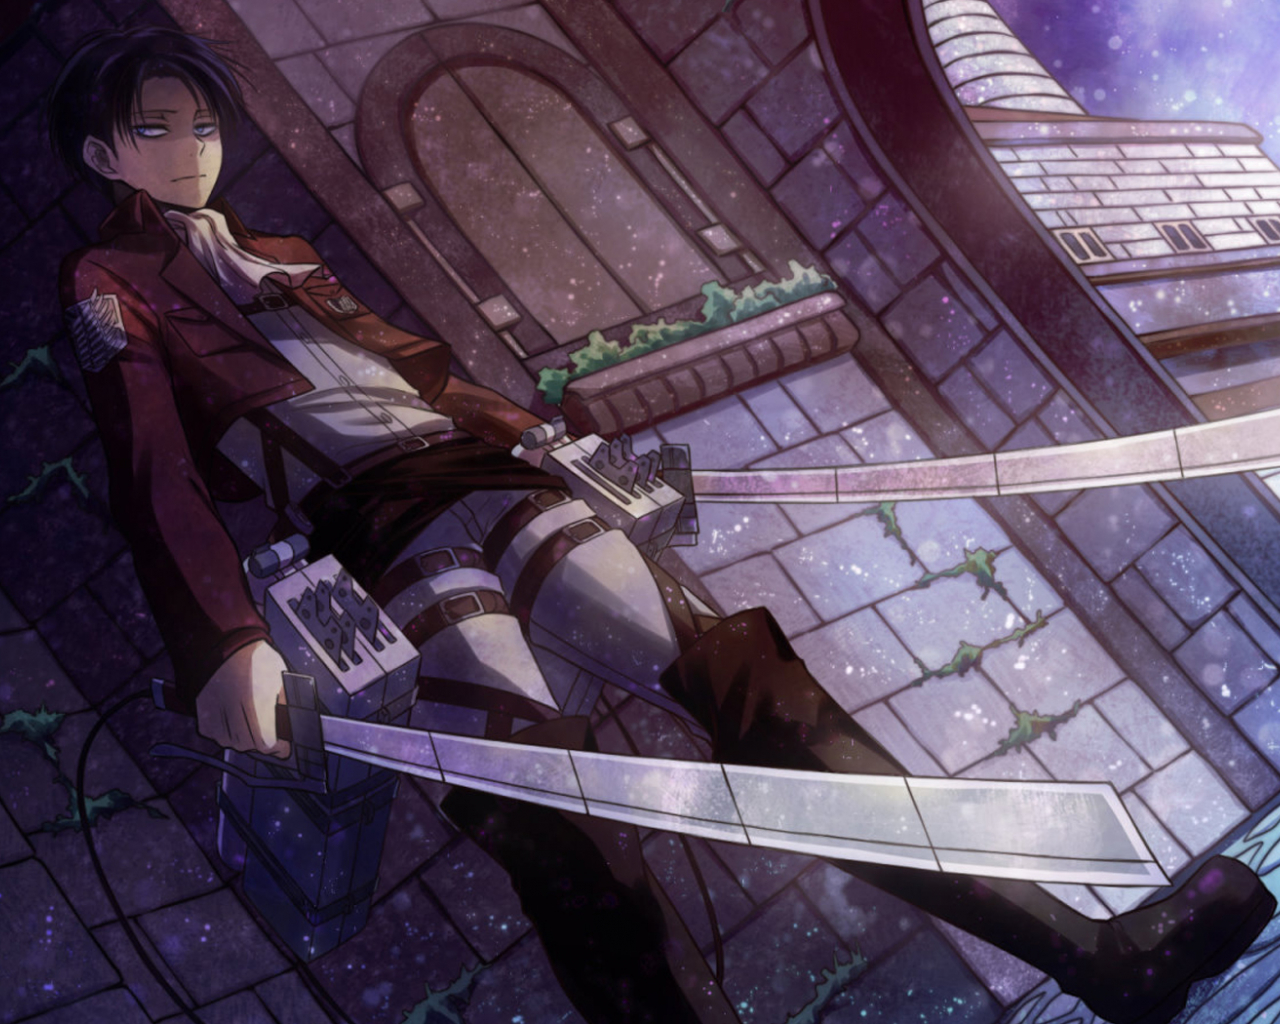 Free Download Levi Rivaille Attack On Titan Shingeki No Kyojin Anime 1680x1050 For Your Desktop Mobile Tablet Explore 49 Attack On Titan Wallpaper Iphone Attack On Titan Wallpaper Levi